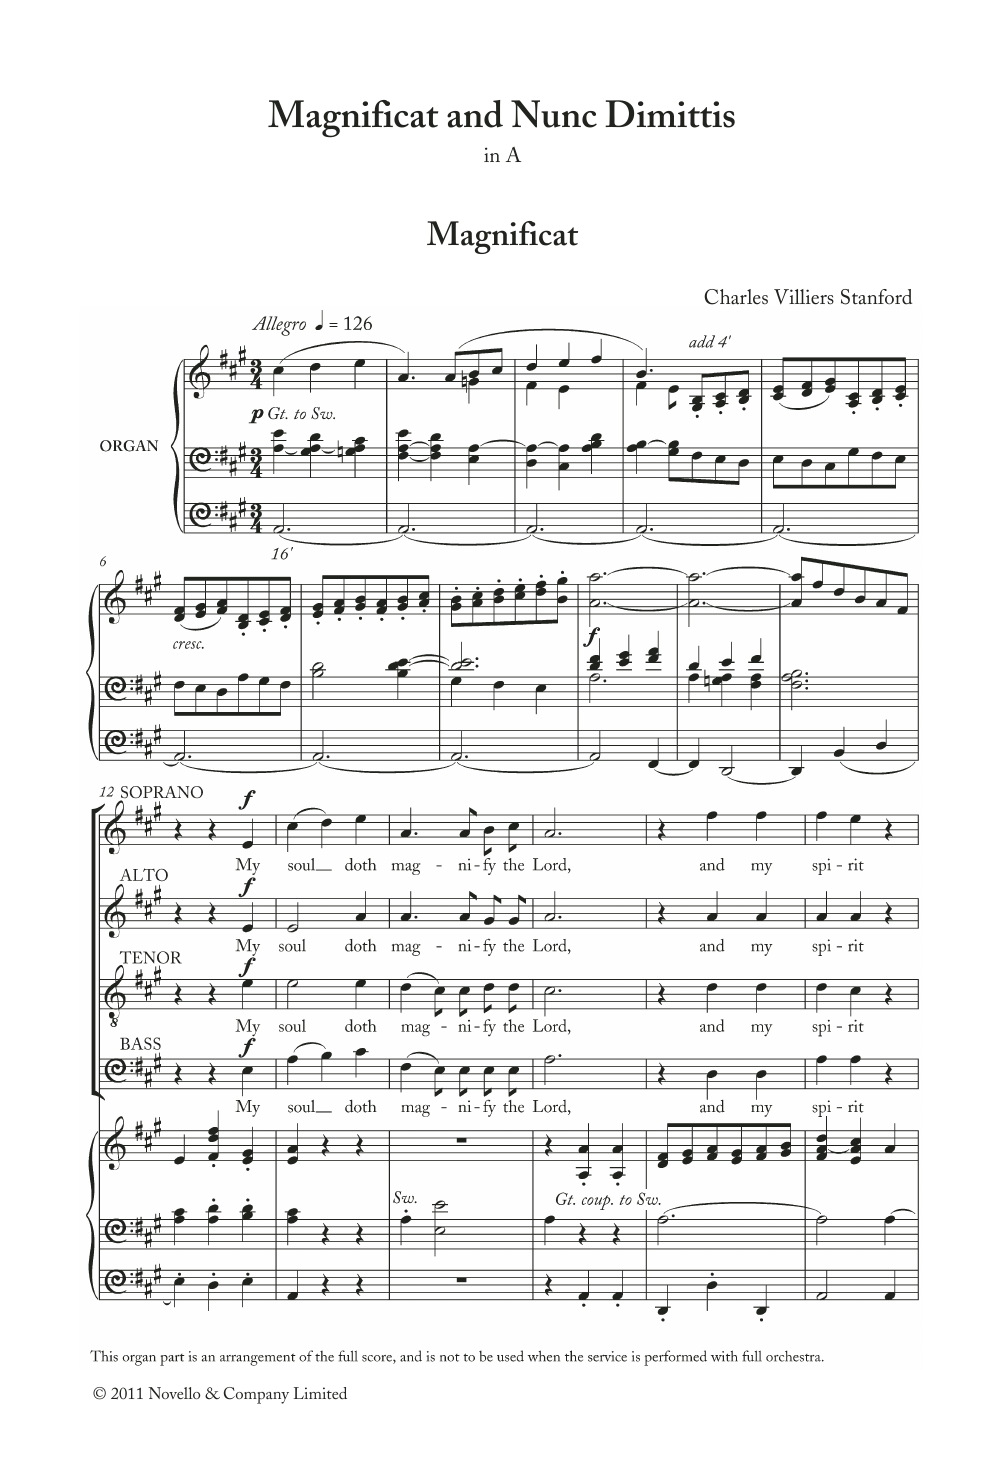 Charles Villiers Stanford - Magnificat And Nunc Dimittis In A